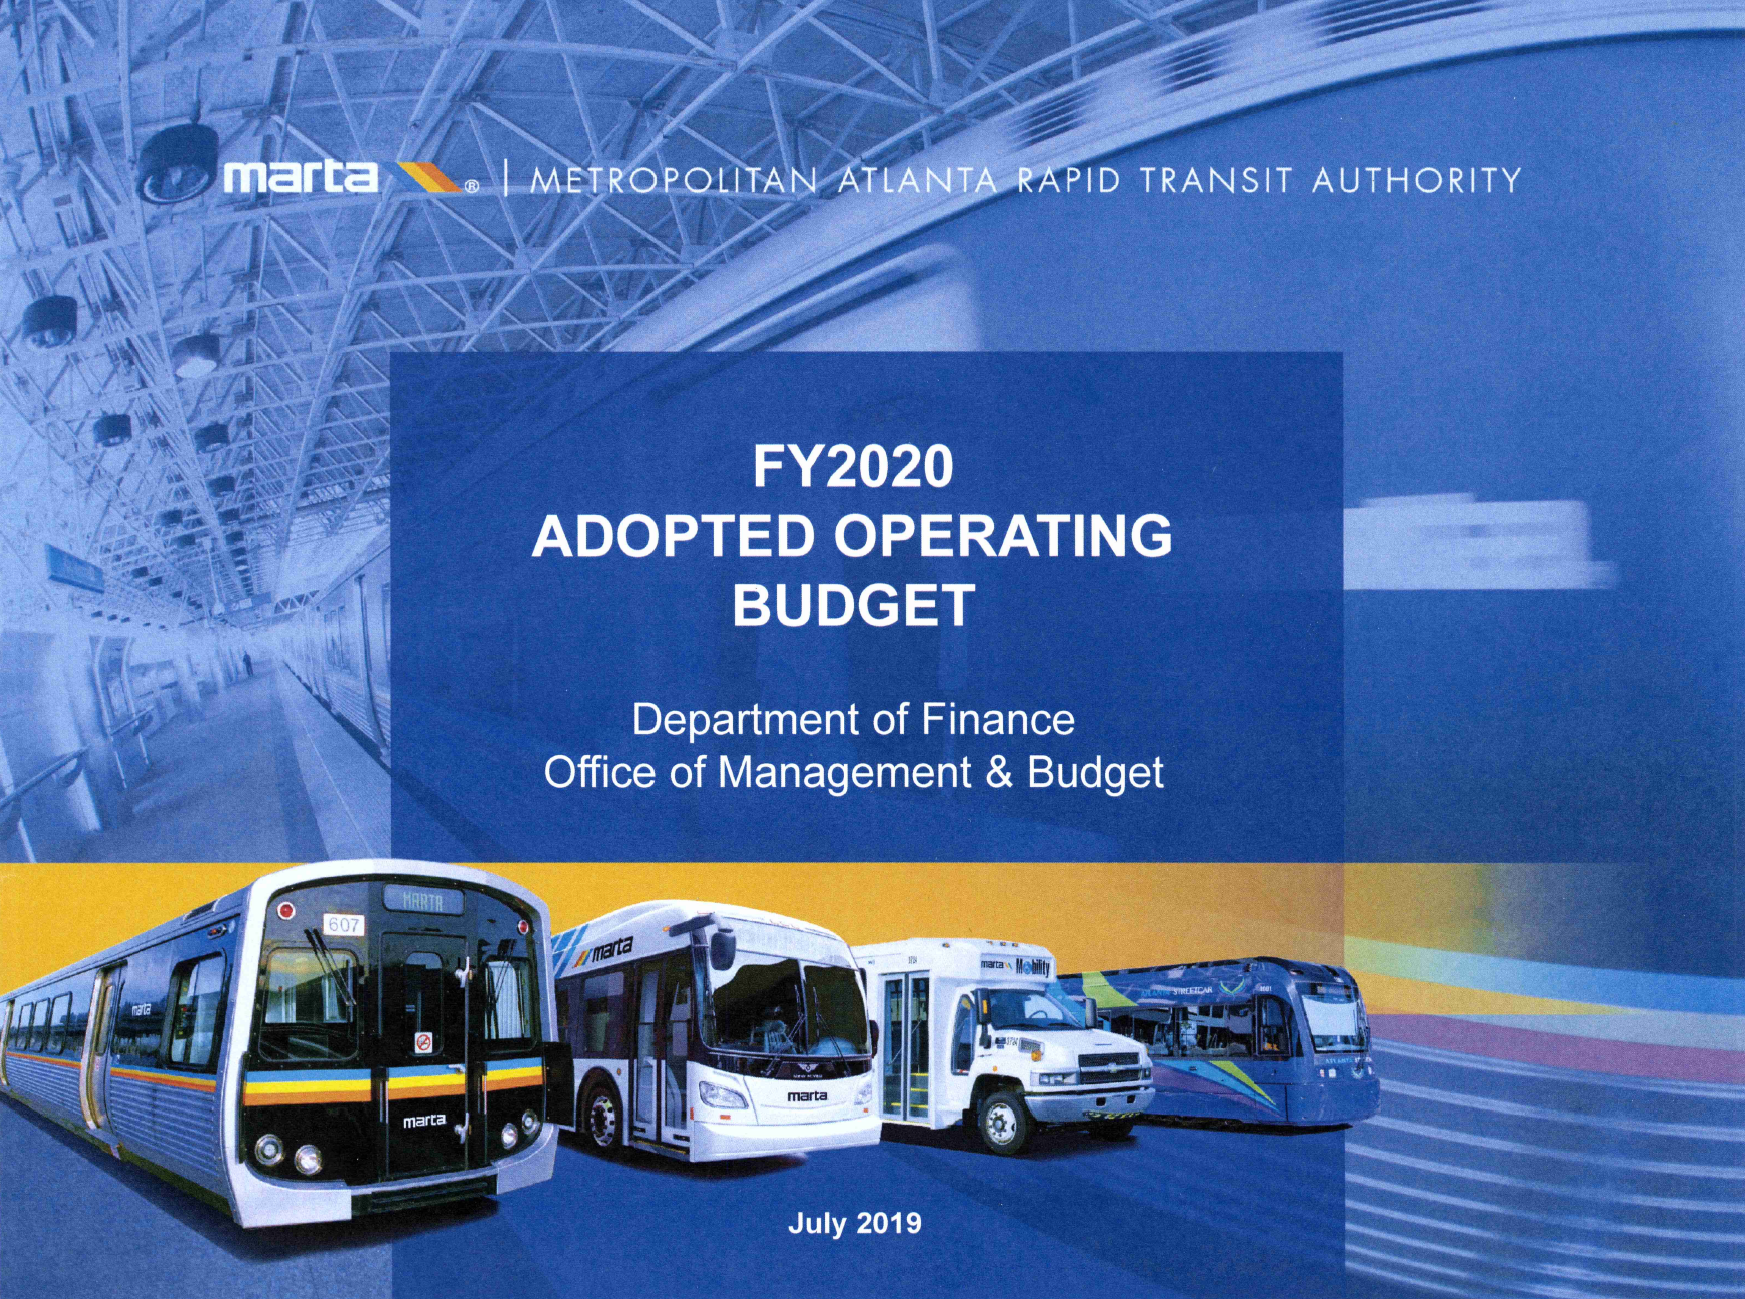 FY2020 Budget Cover